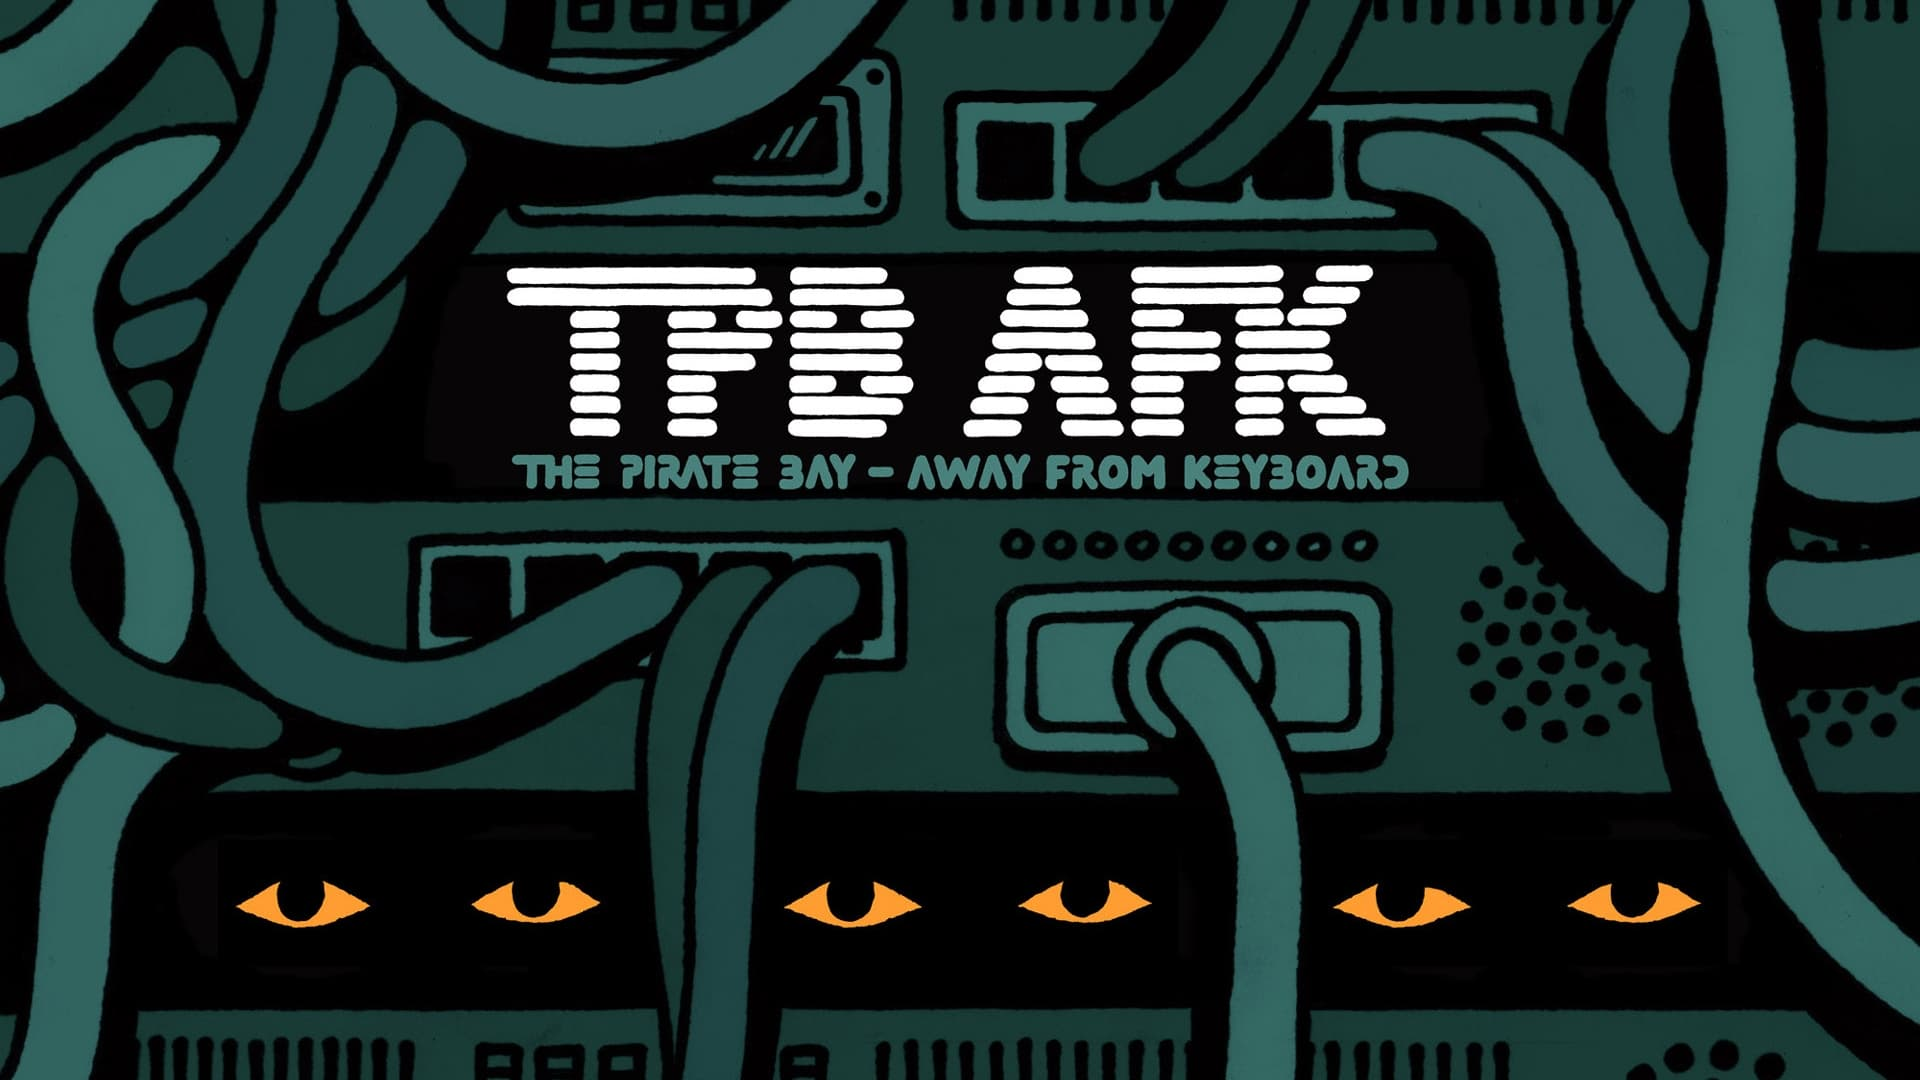 The Pirate Bay - Away From Keyboard (2013)